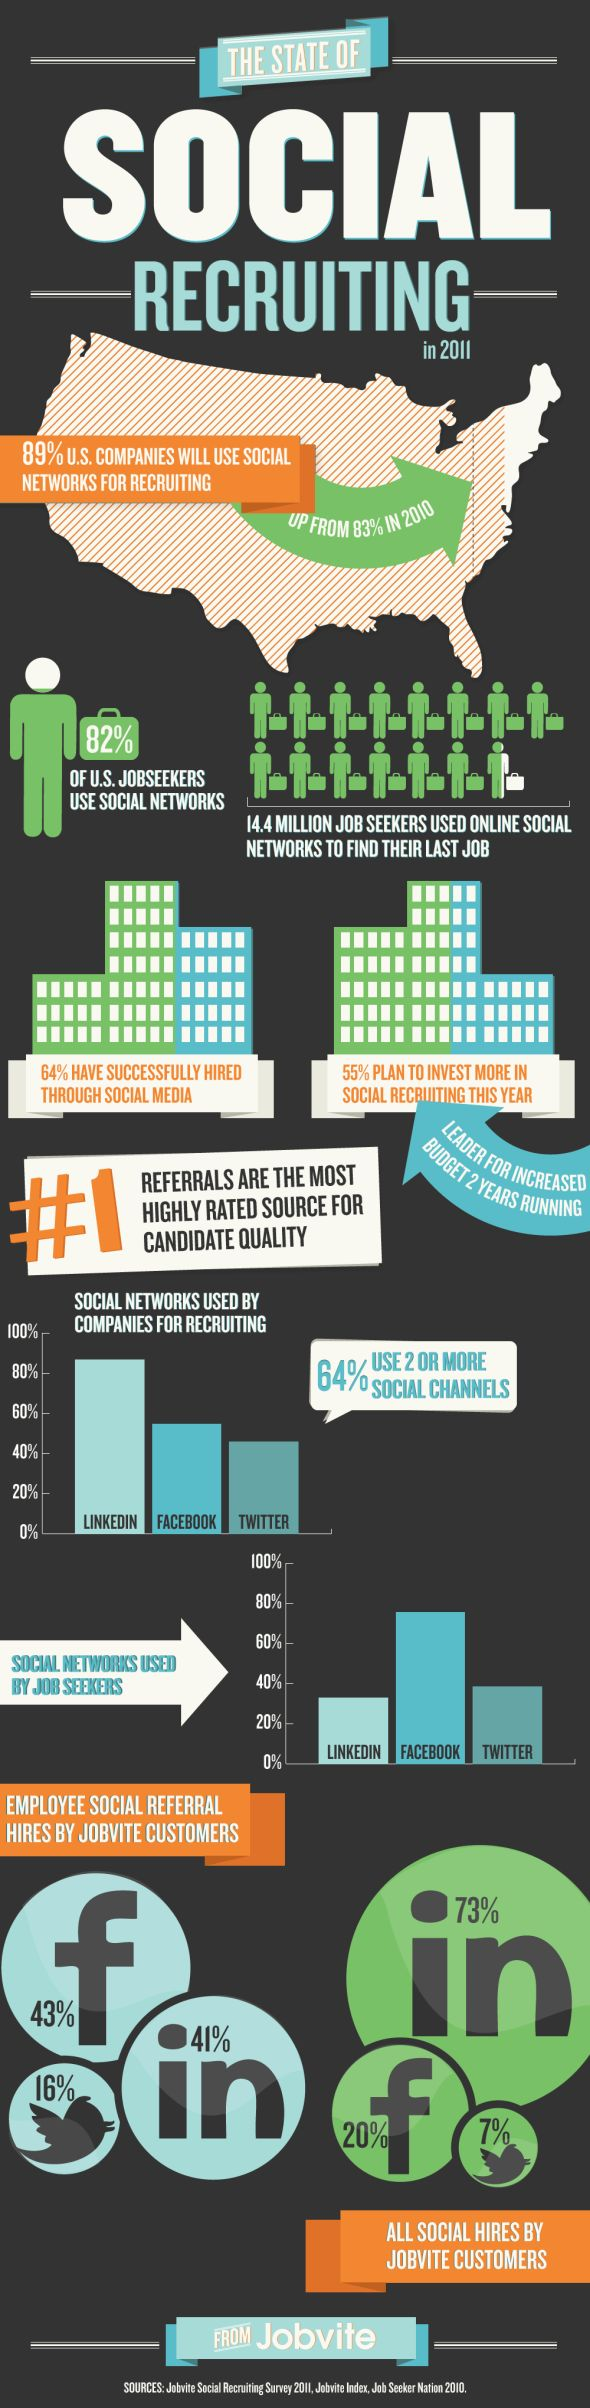 14 Best Smo Images On Pinterest Info Graphics Infographic And Diagram W Tracking The Signal Go To Www Retrevo Com Interesting Facts Social Networking Recruiting